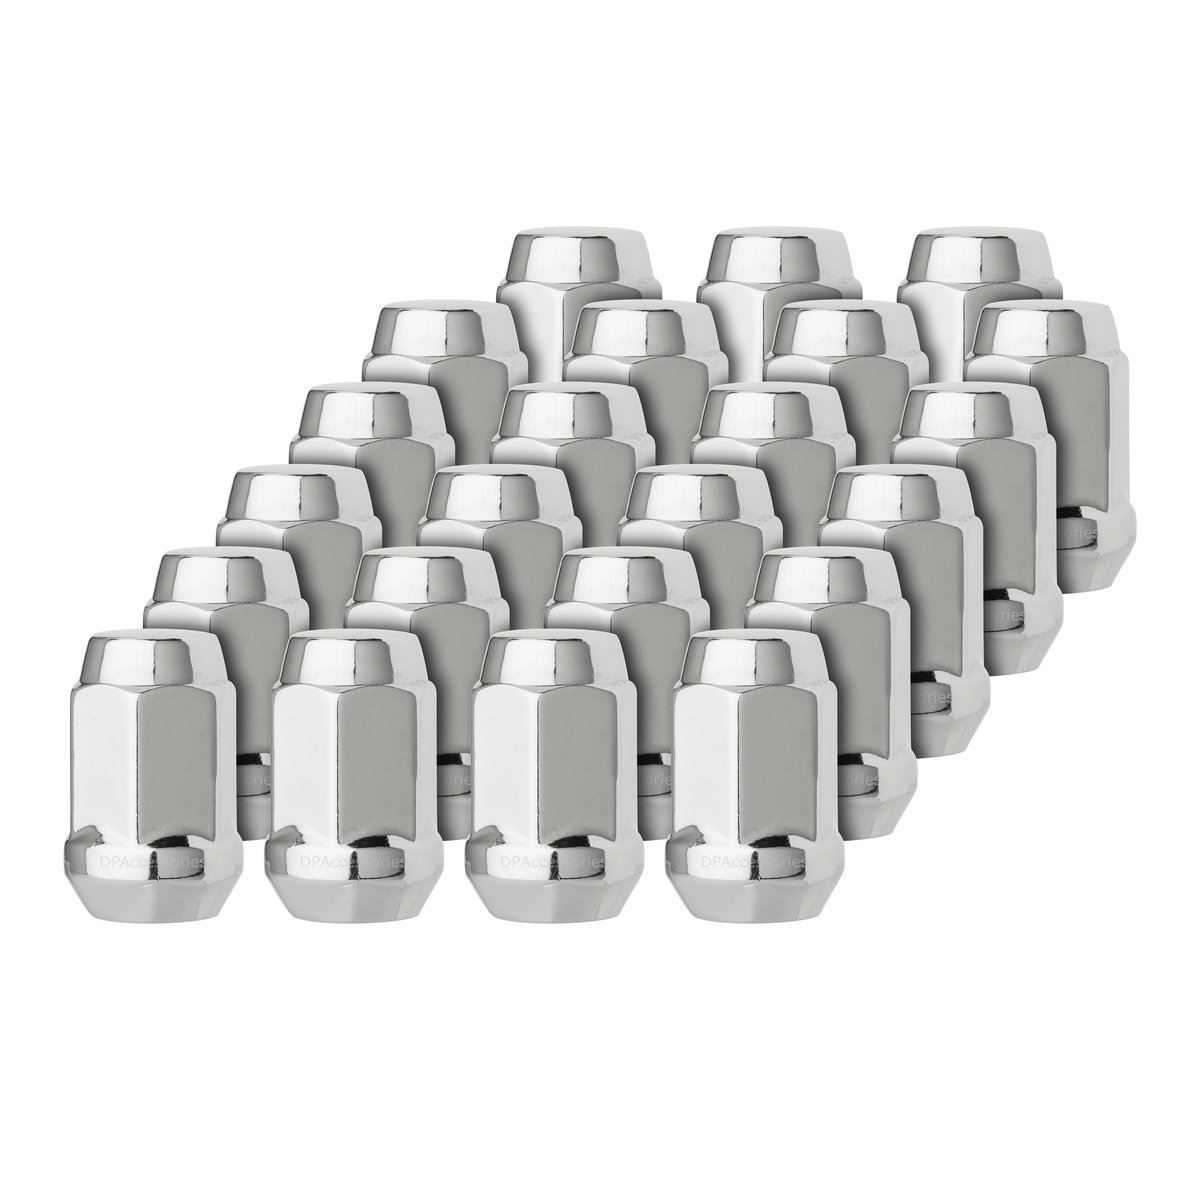 DPAccessories LCB3B2HC-CH04023 23 Chrome 1/2-20 Closed End Bulge Acorn Lug Nuts - Cone Seat - 3/4'' Hex Wheel Lug Nut